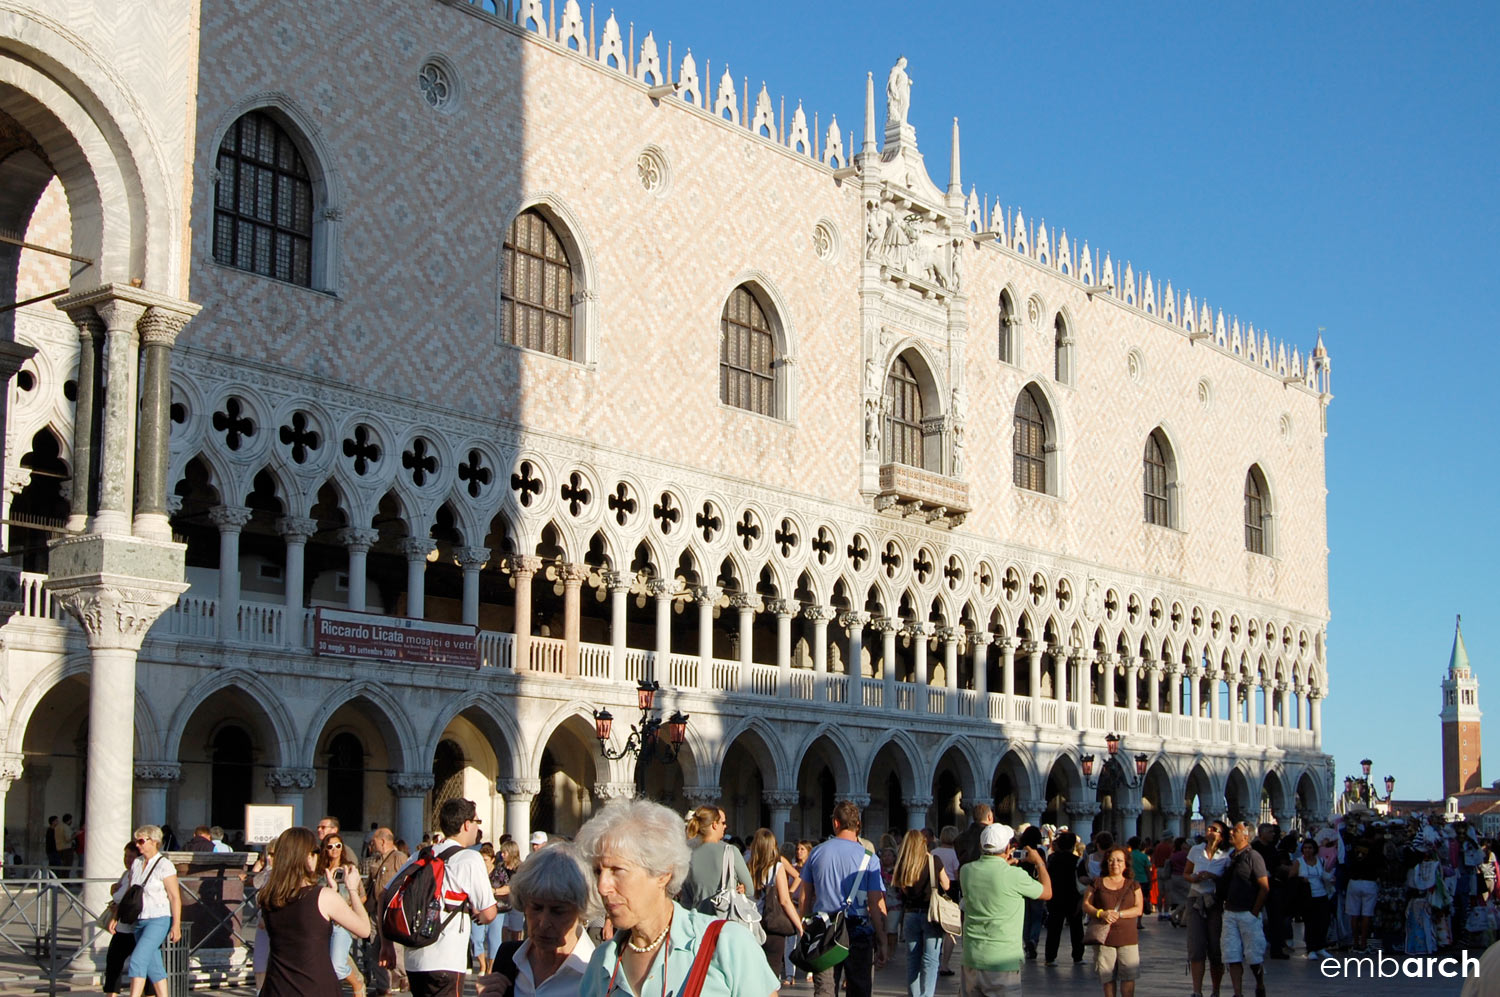 Palazzo Ducale - view of exterior